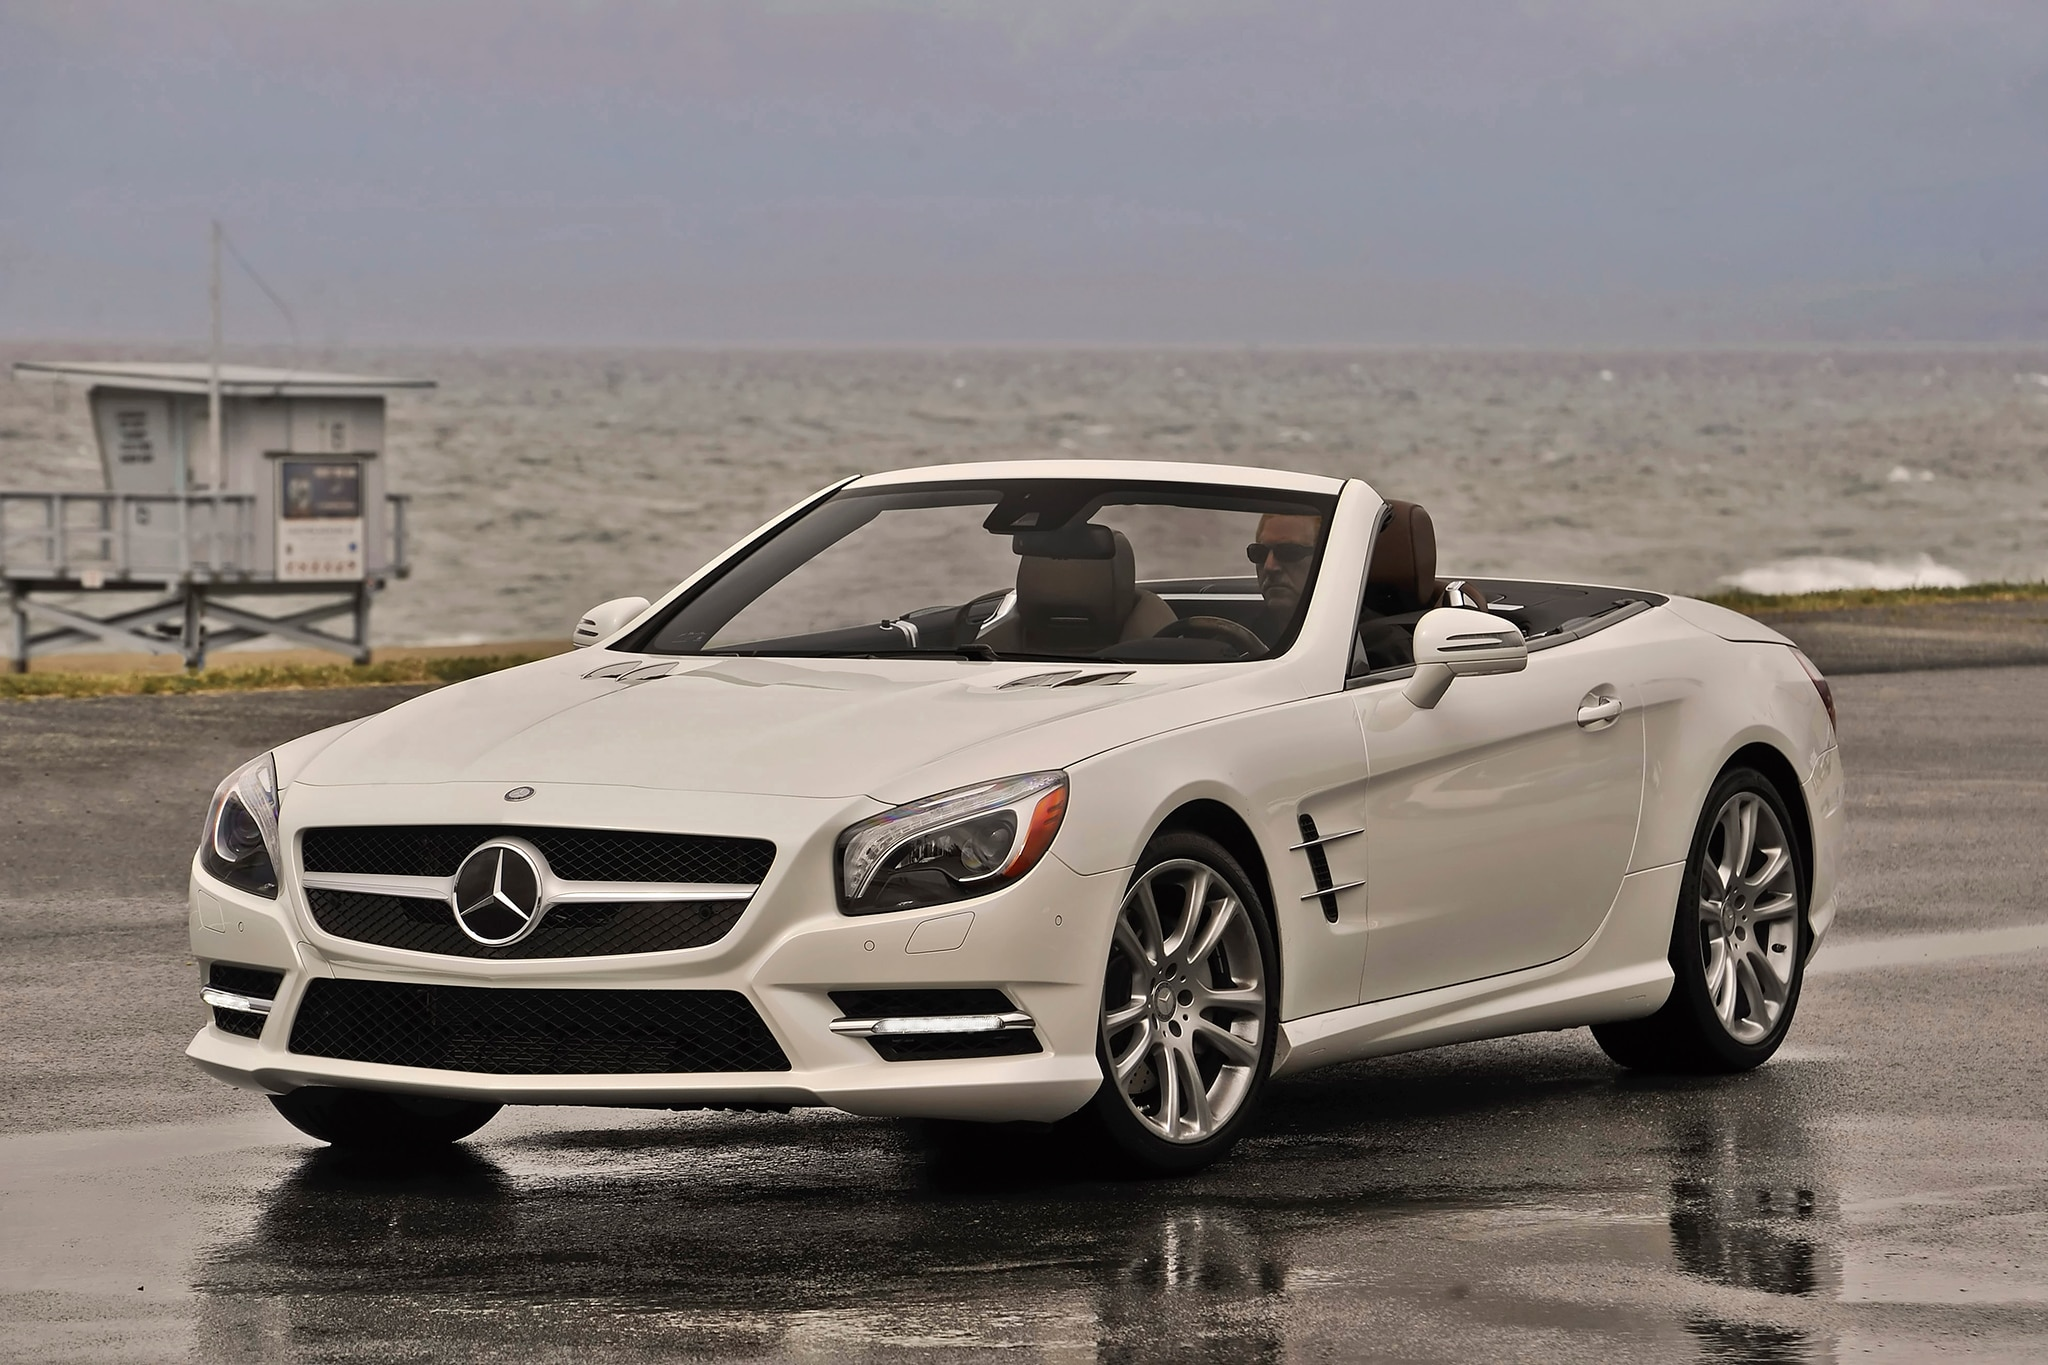 2014 Mercedes Benz SL550 Front Side View1